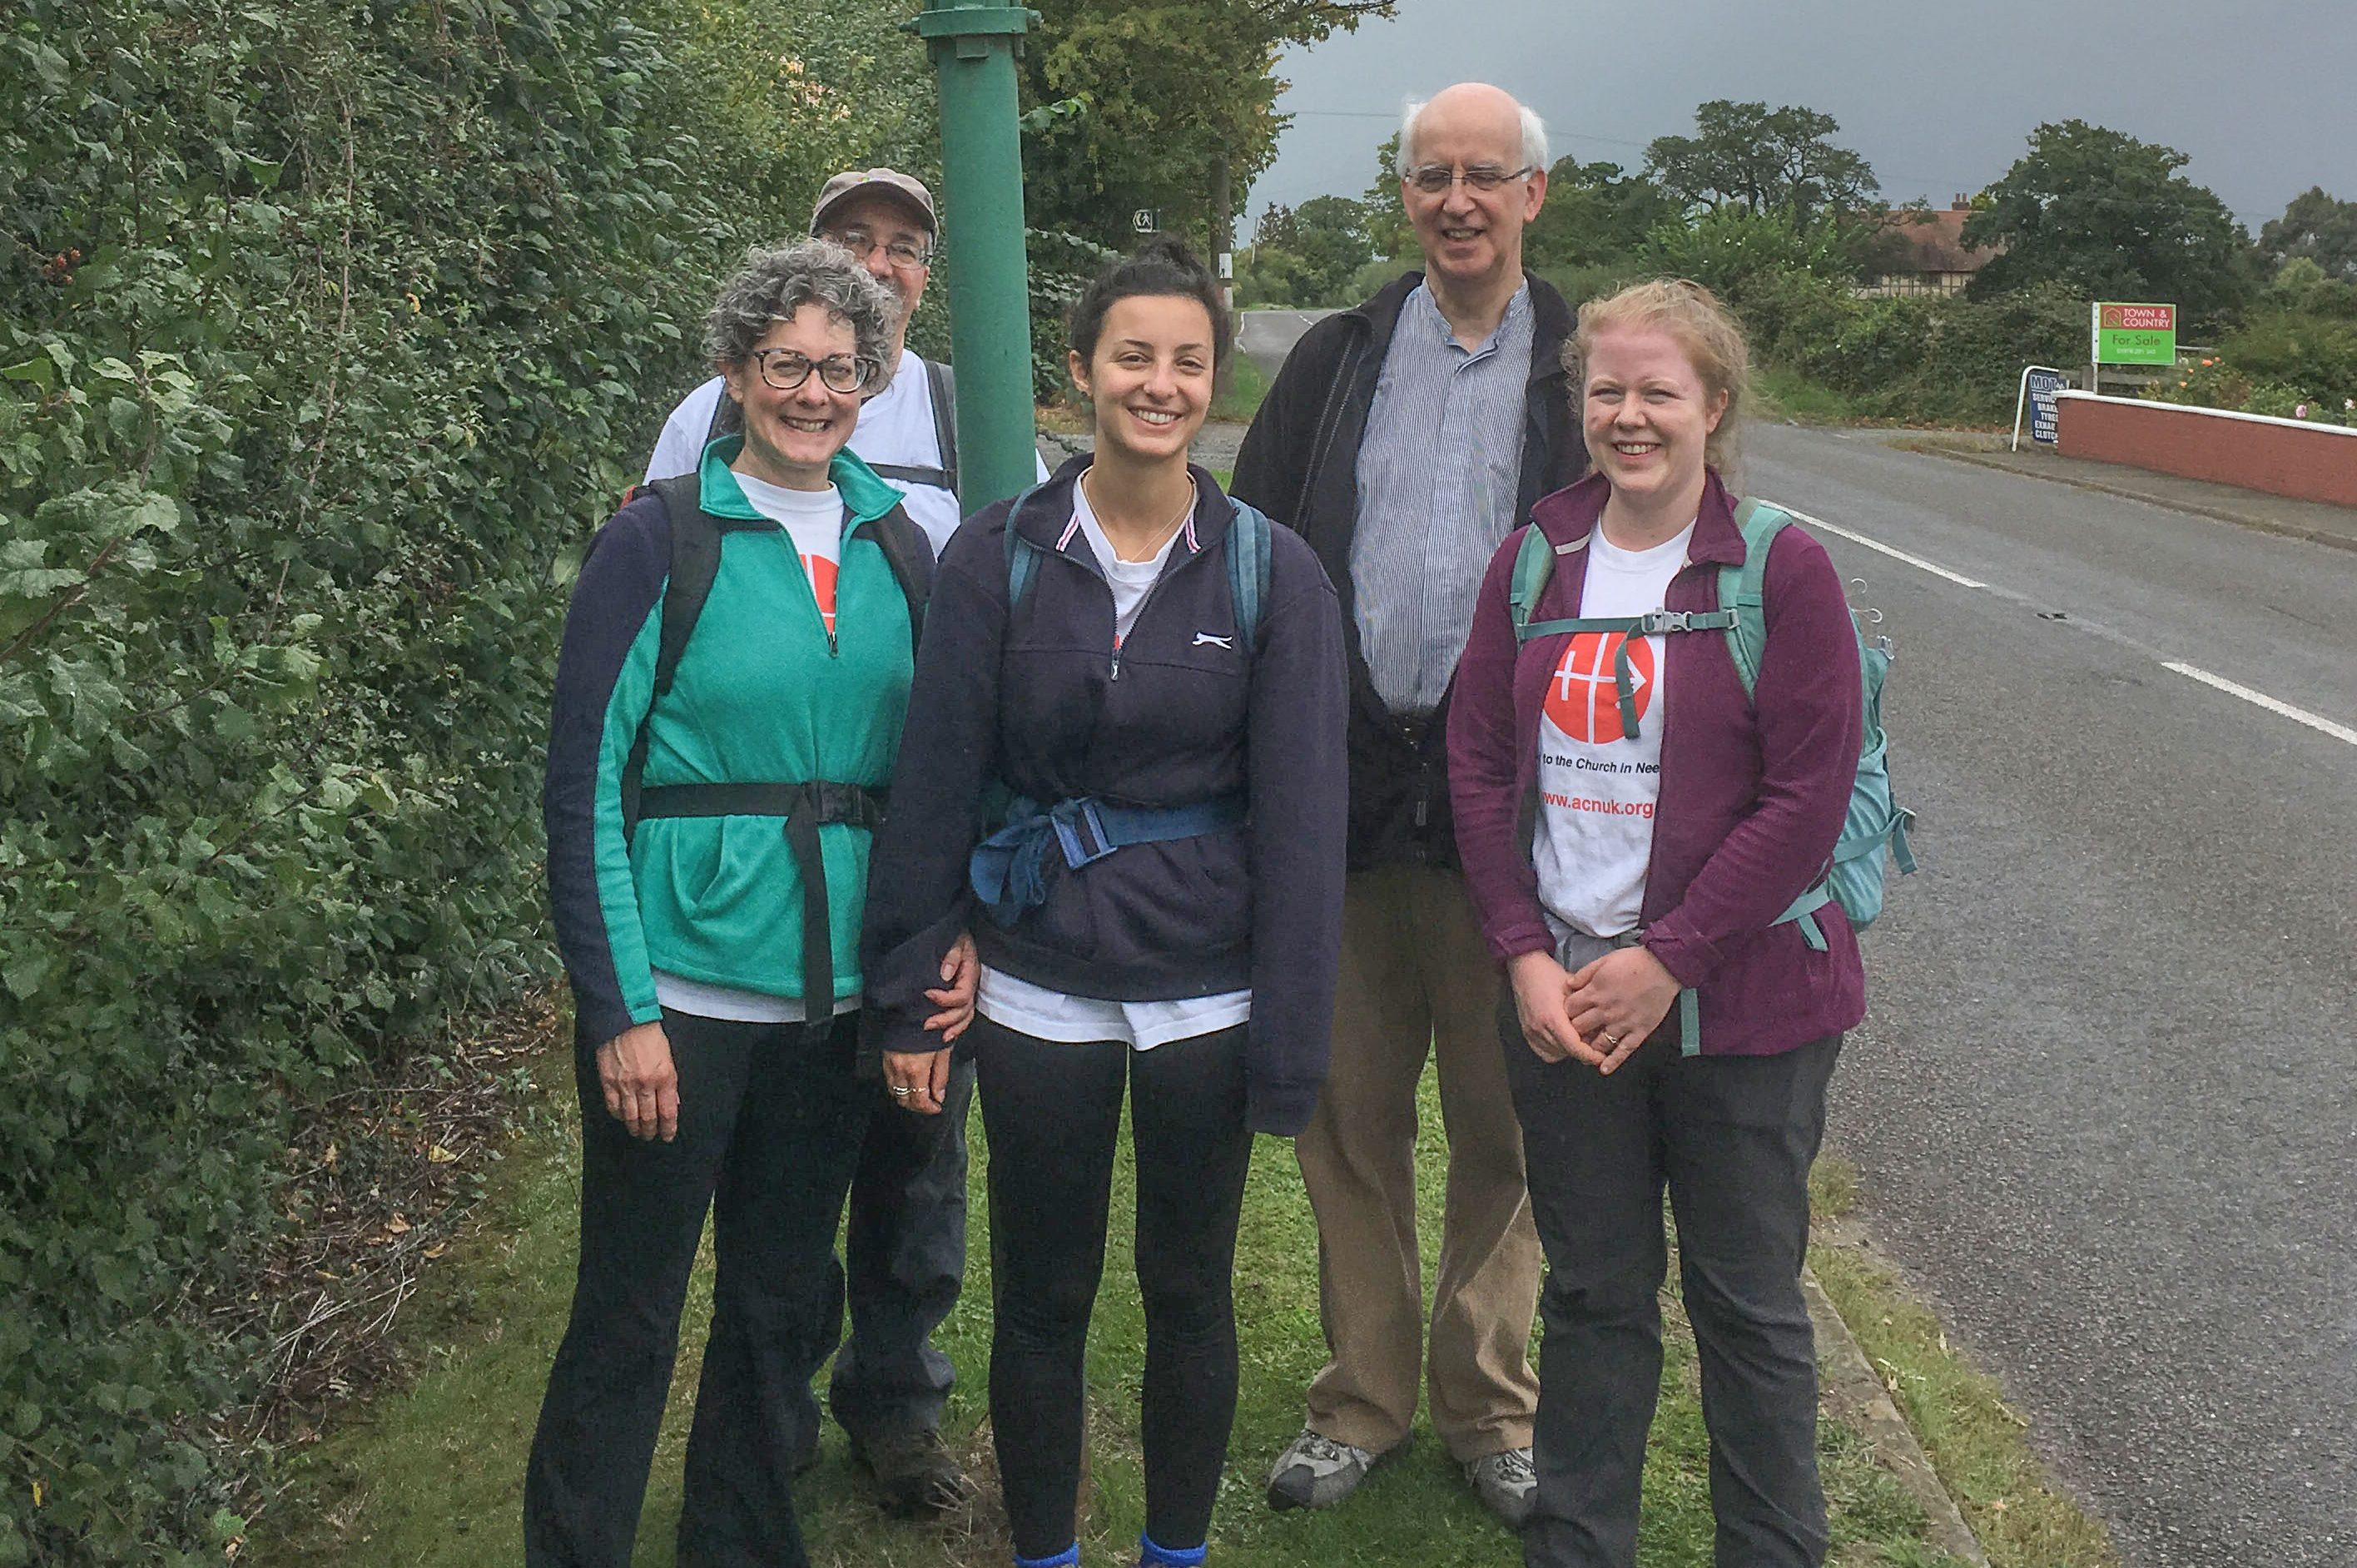 ACN's Caroline Hull (left) and Bridget Teasdale (right) with Bishop Peter Brignall of Wrexham and ACN supporters Clemmie and Andrew (© ACN)